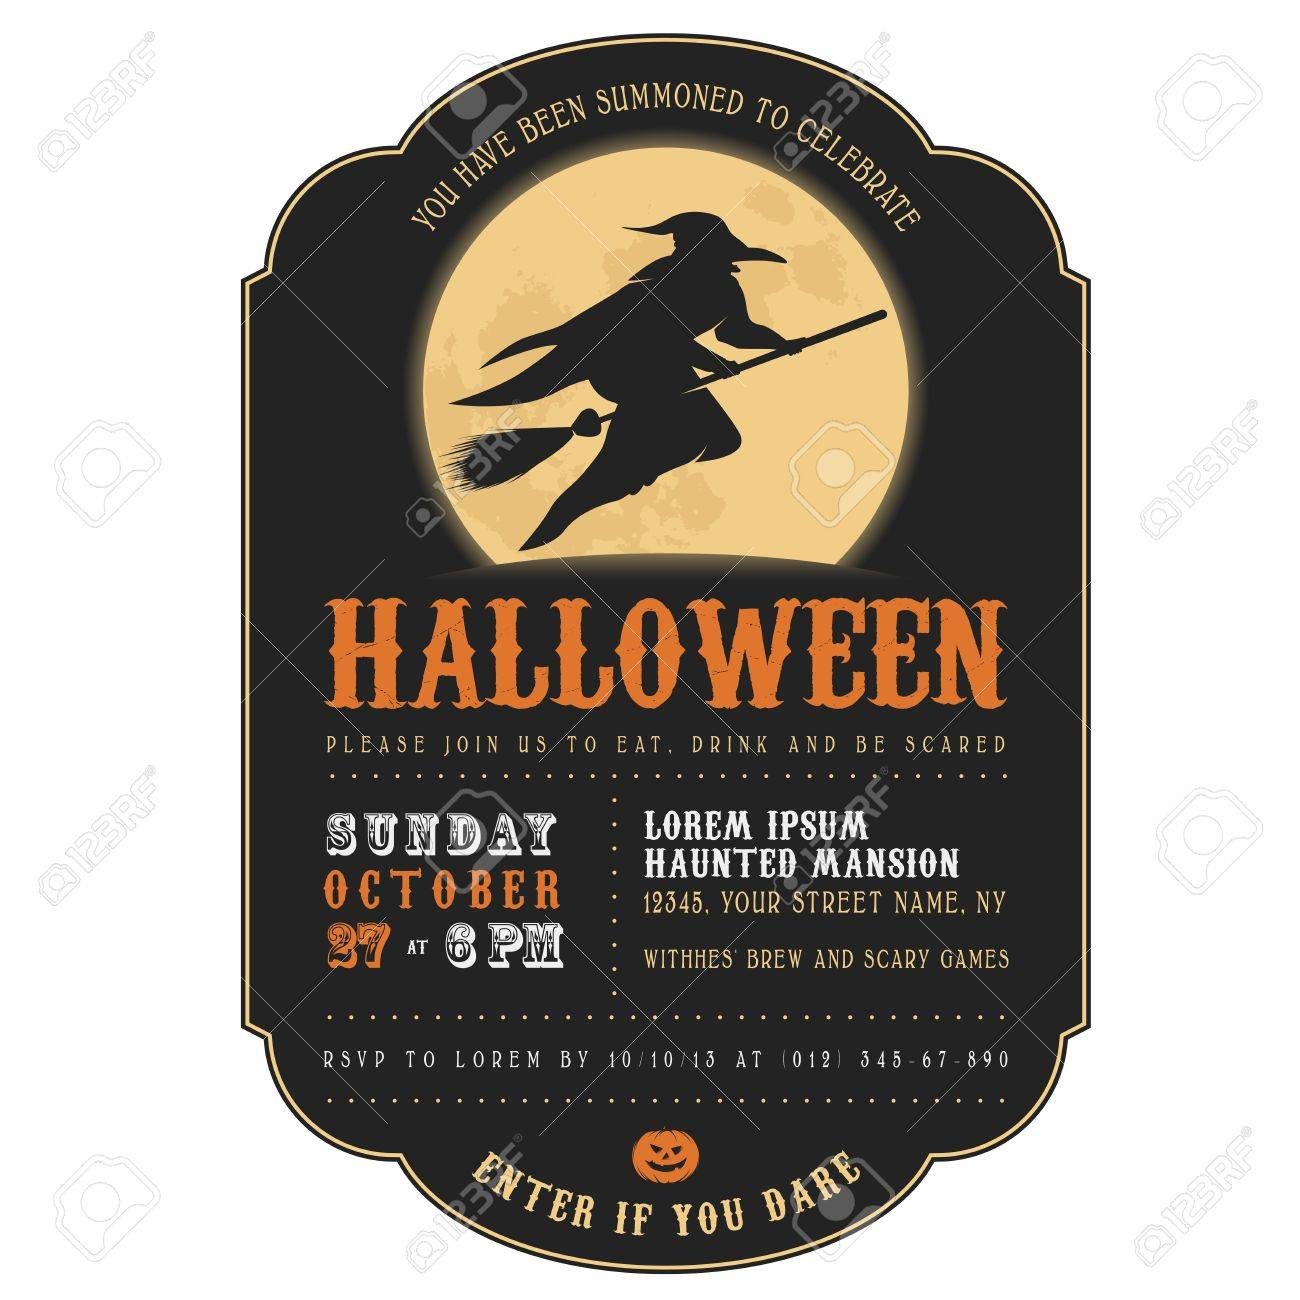 Vintage Halloween Invitation With Witch Flying On A Broom Royalty